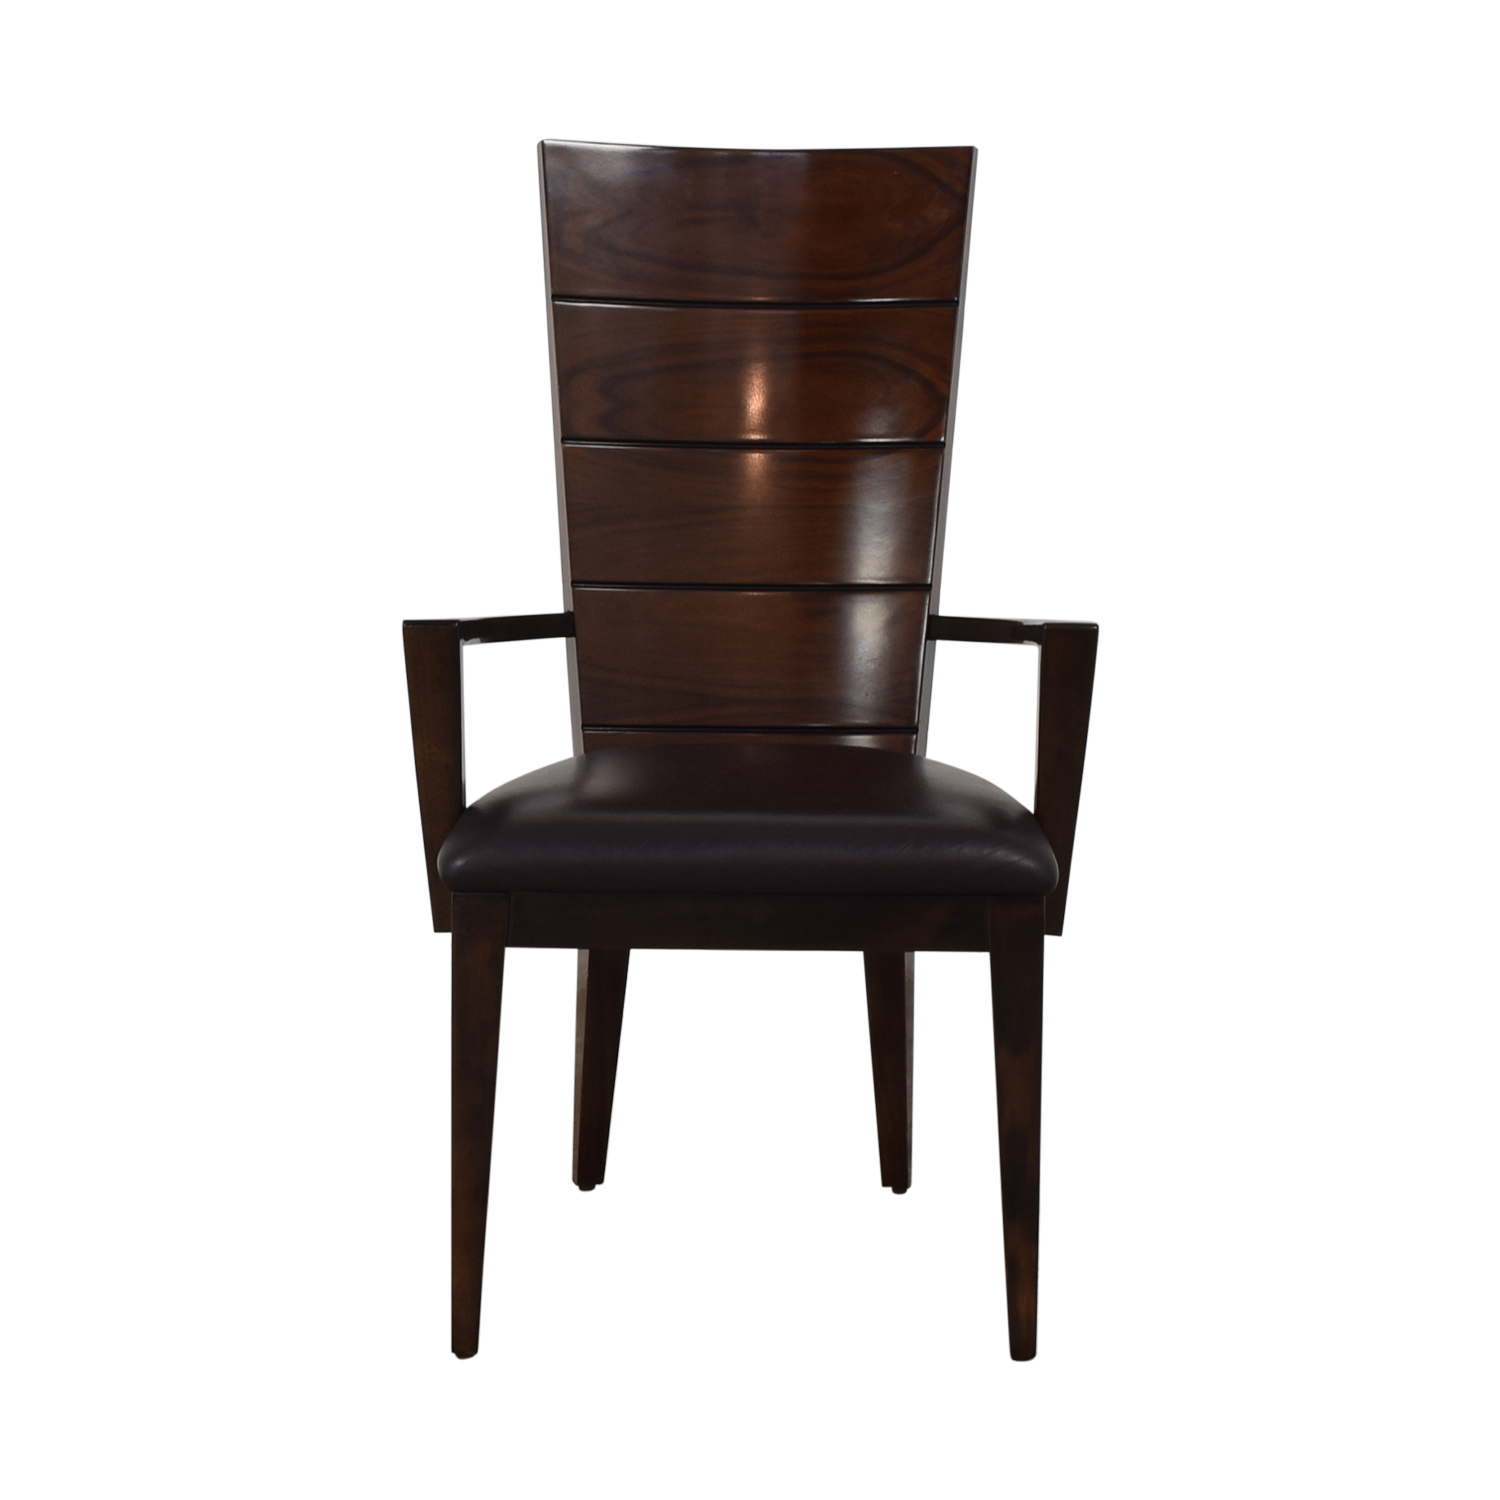 Elio High Gloss Wood and Leather Chair dimensions